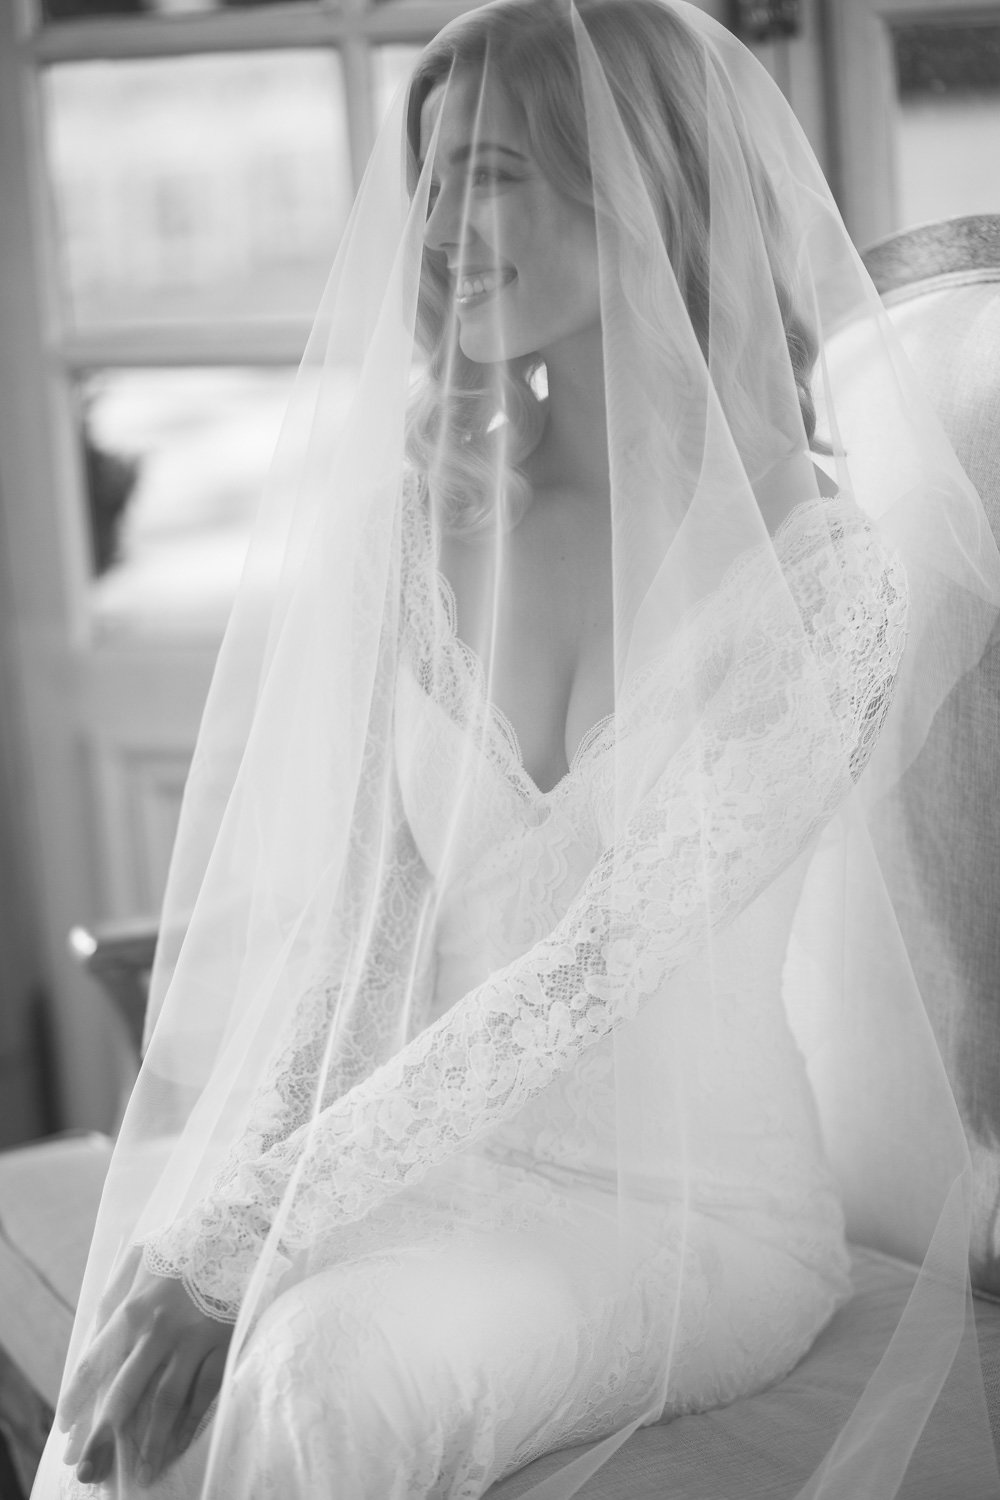 LowResCampbellPointHouseWeddingPhotography52.jpg